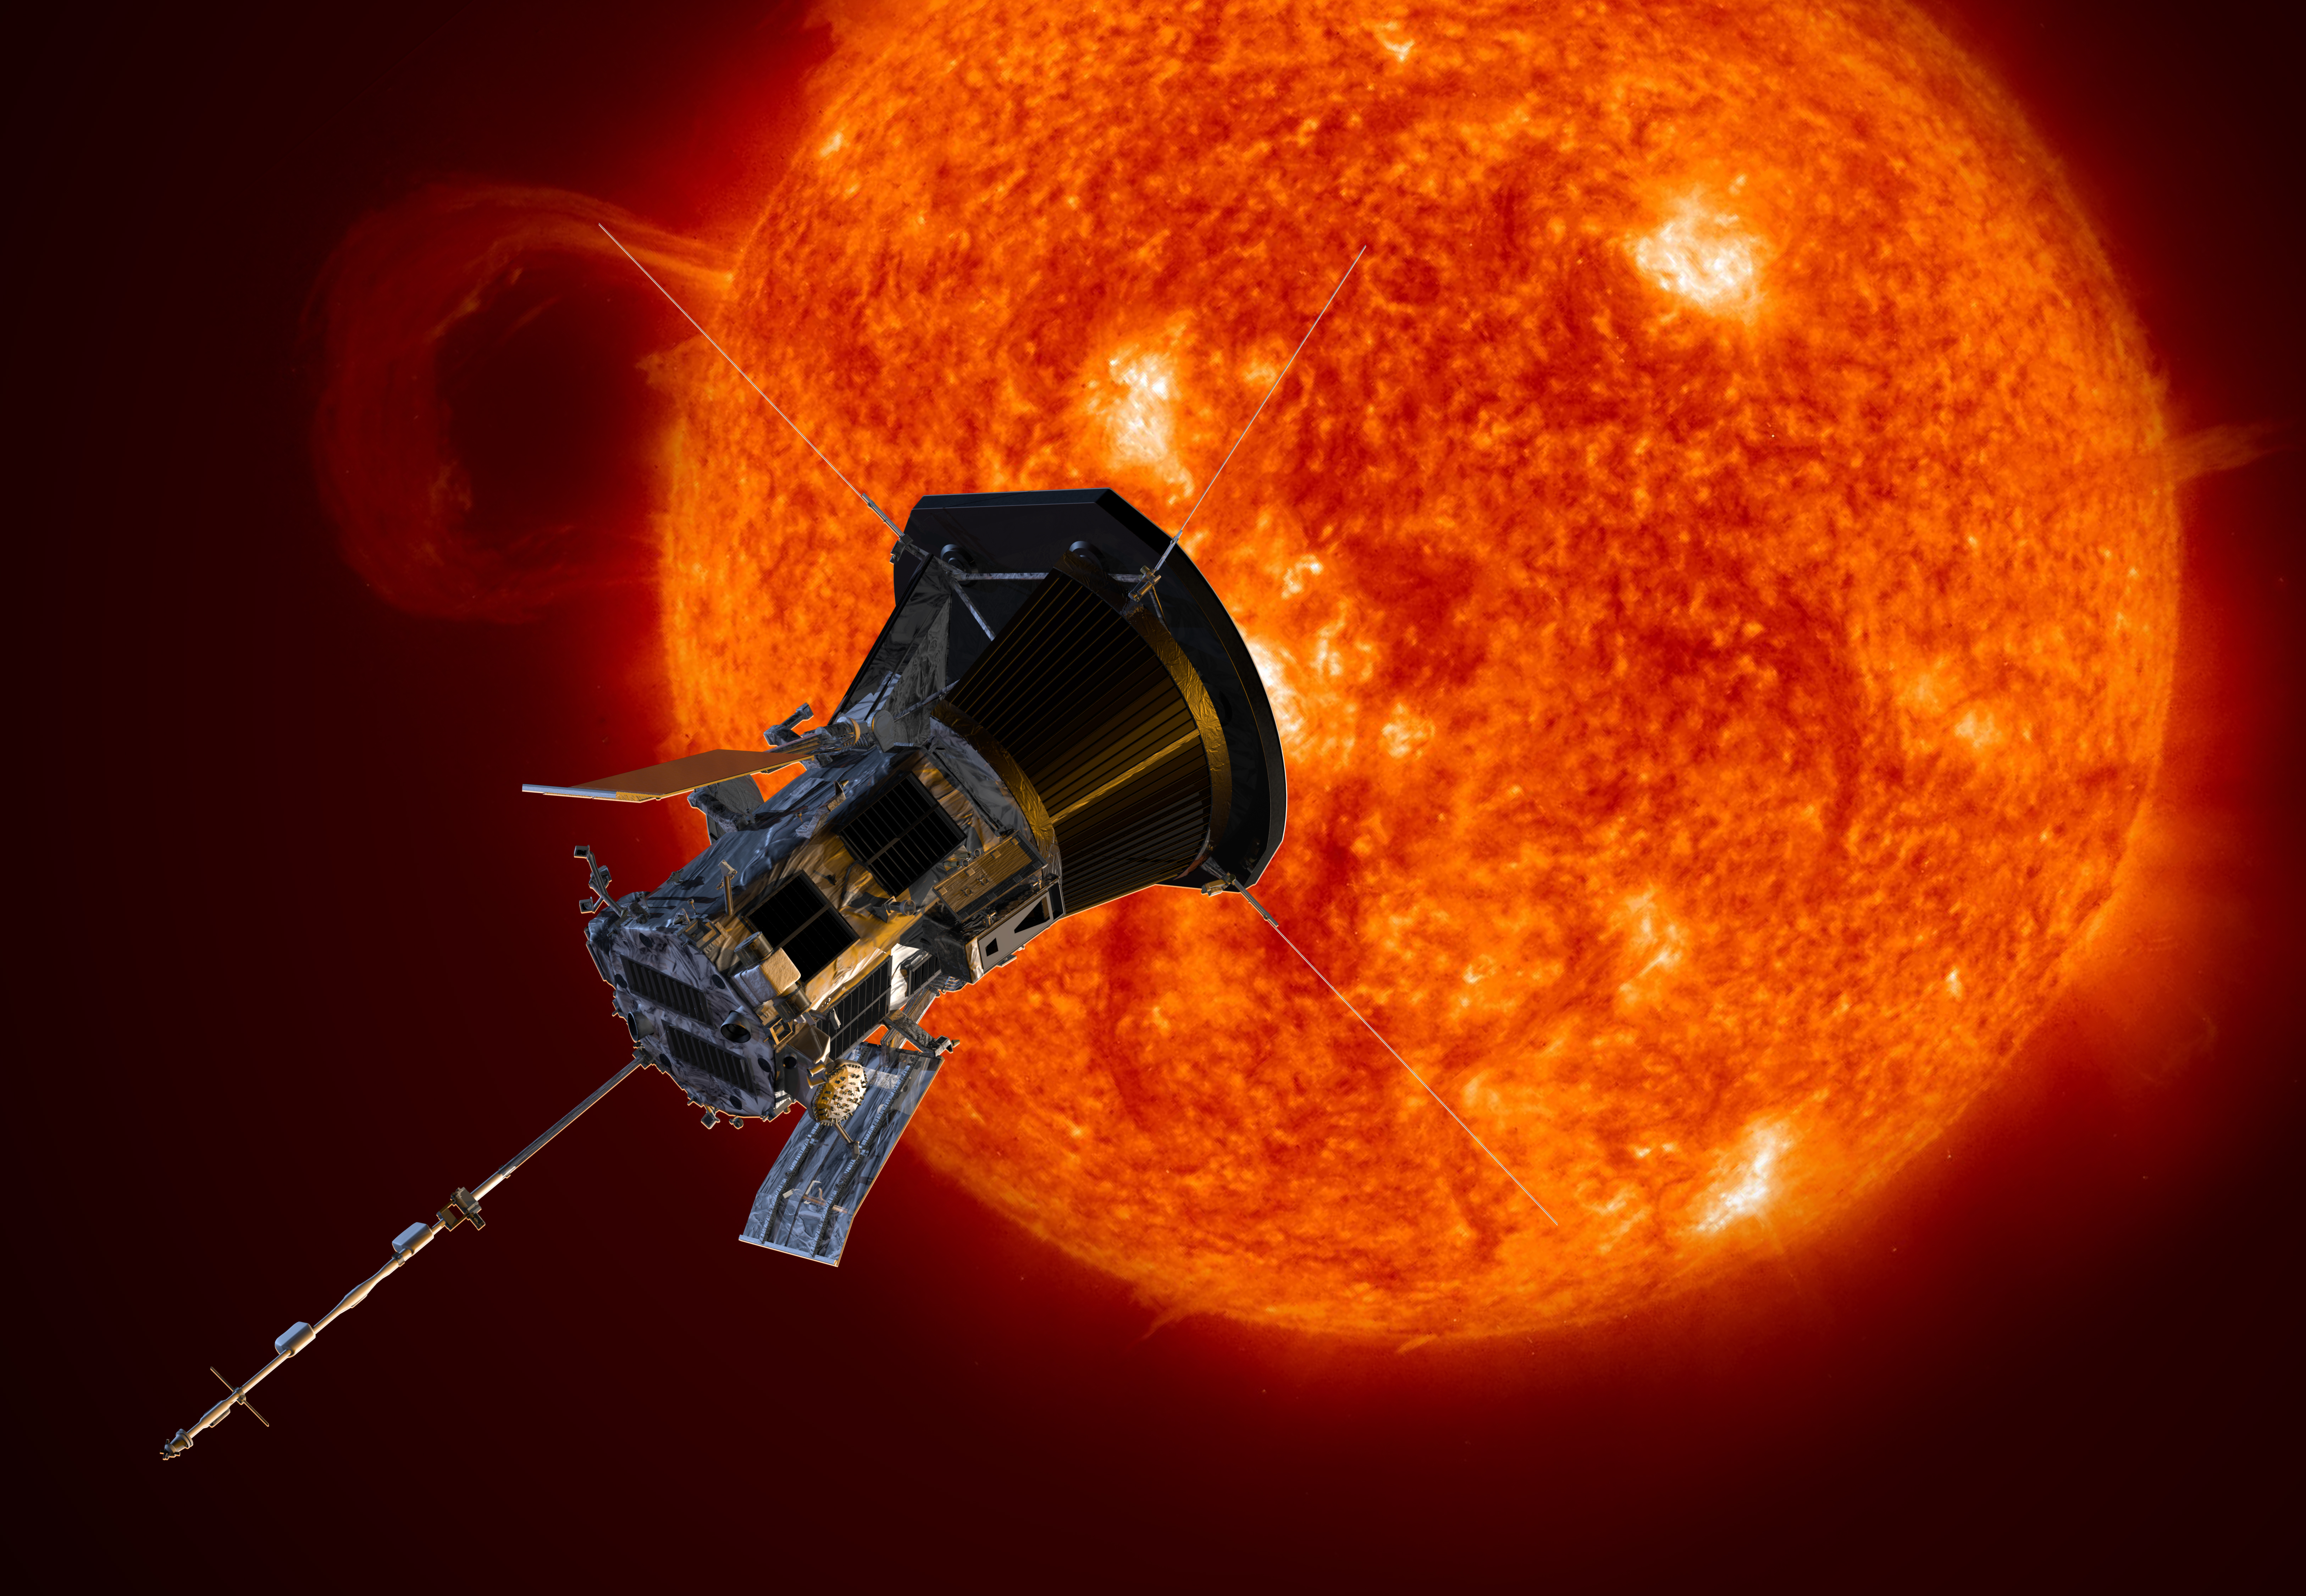 this spacecraft will get closer to the sun than any before it